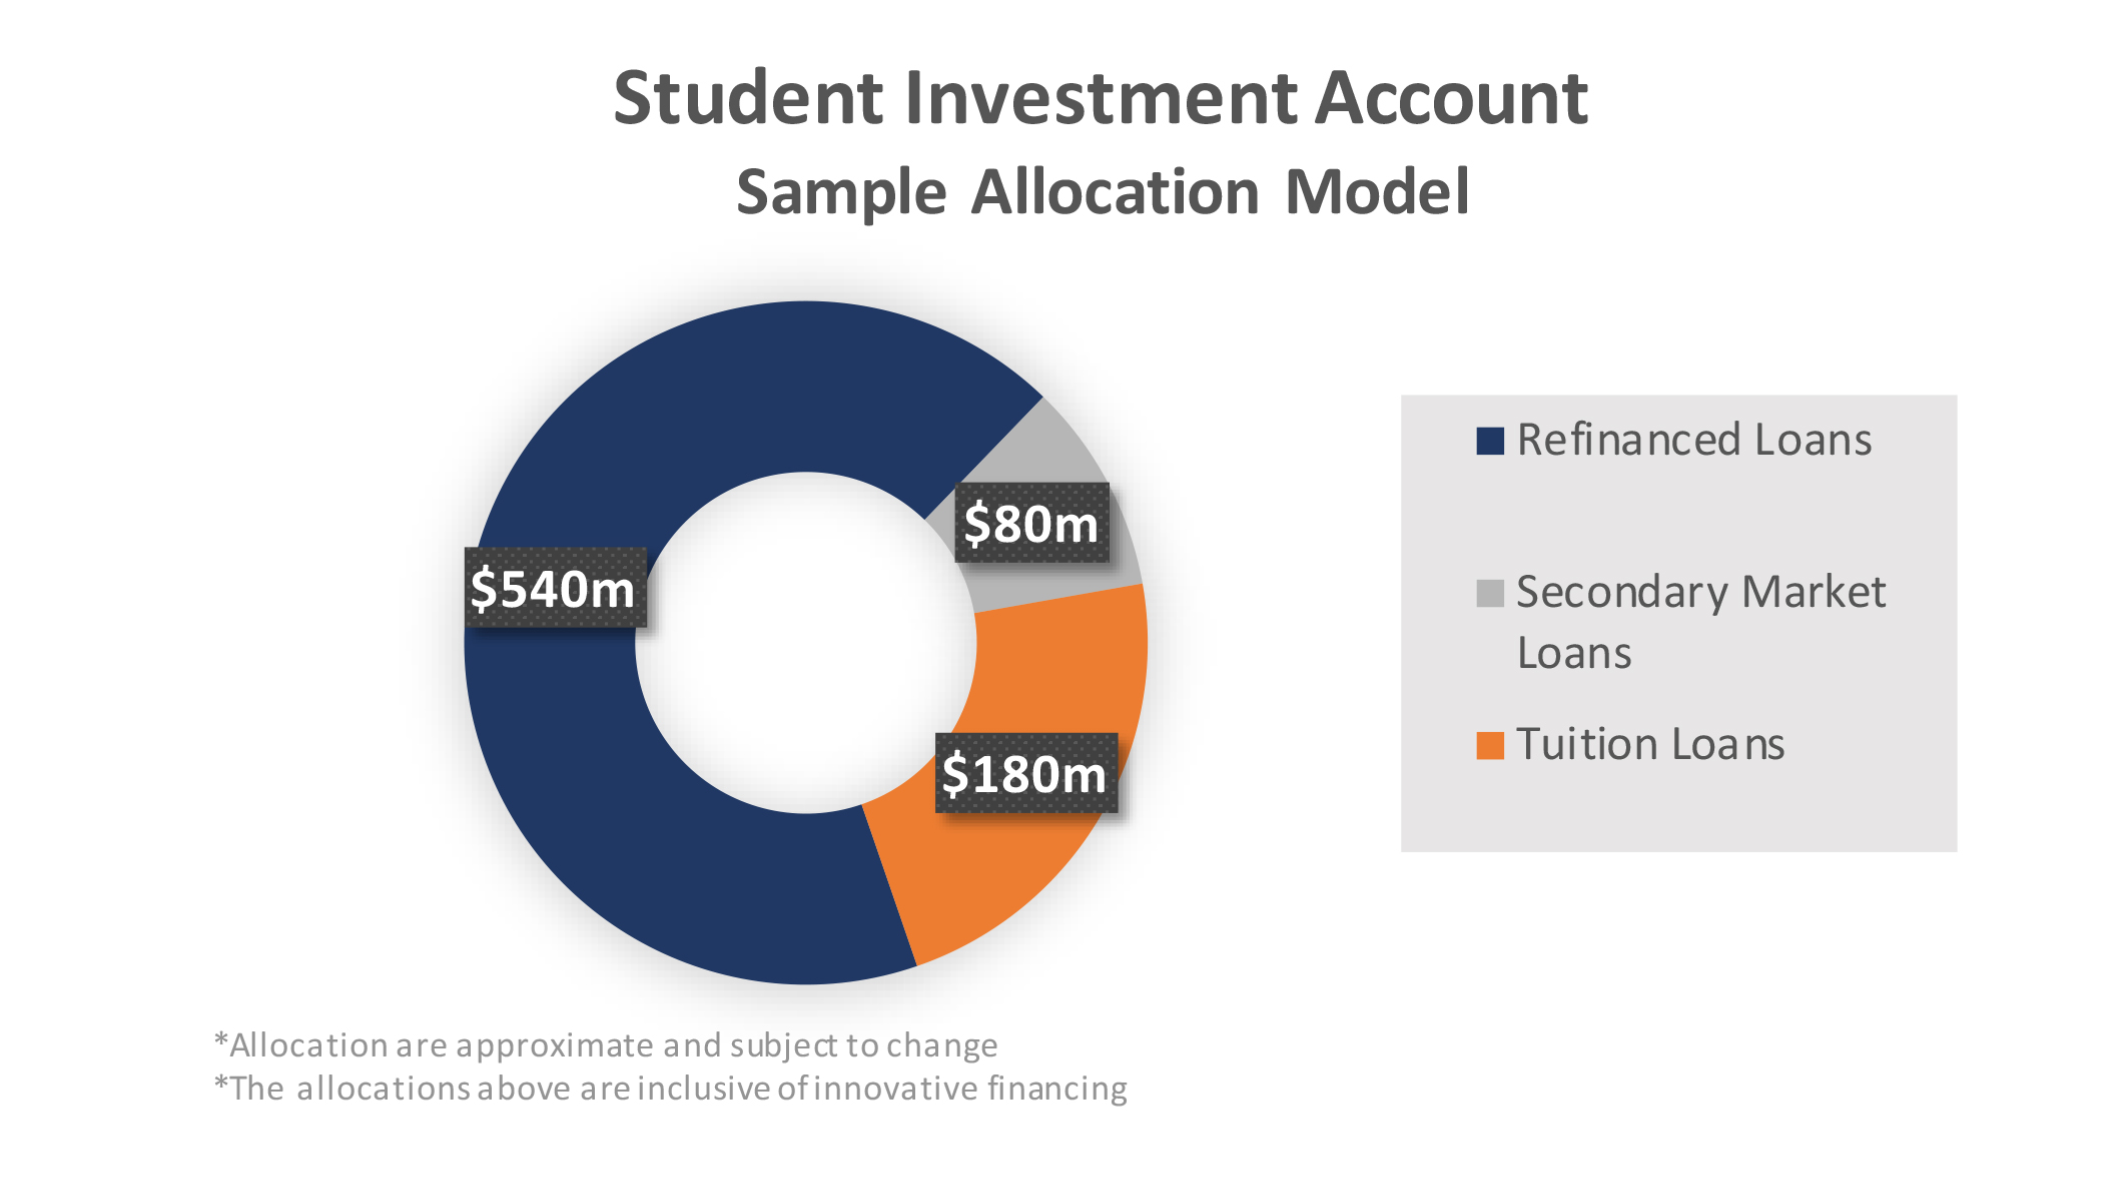 Student Investment Account Sample Allocation Model